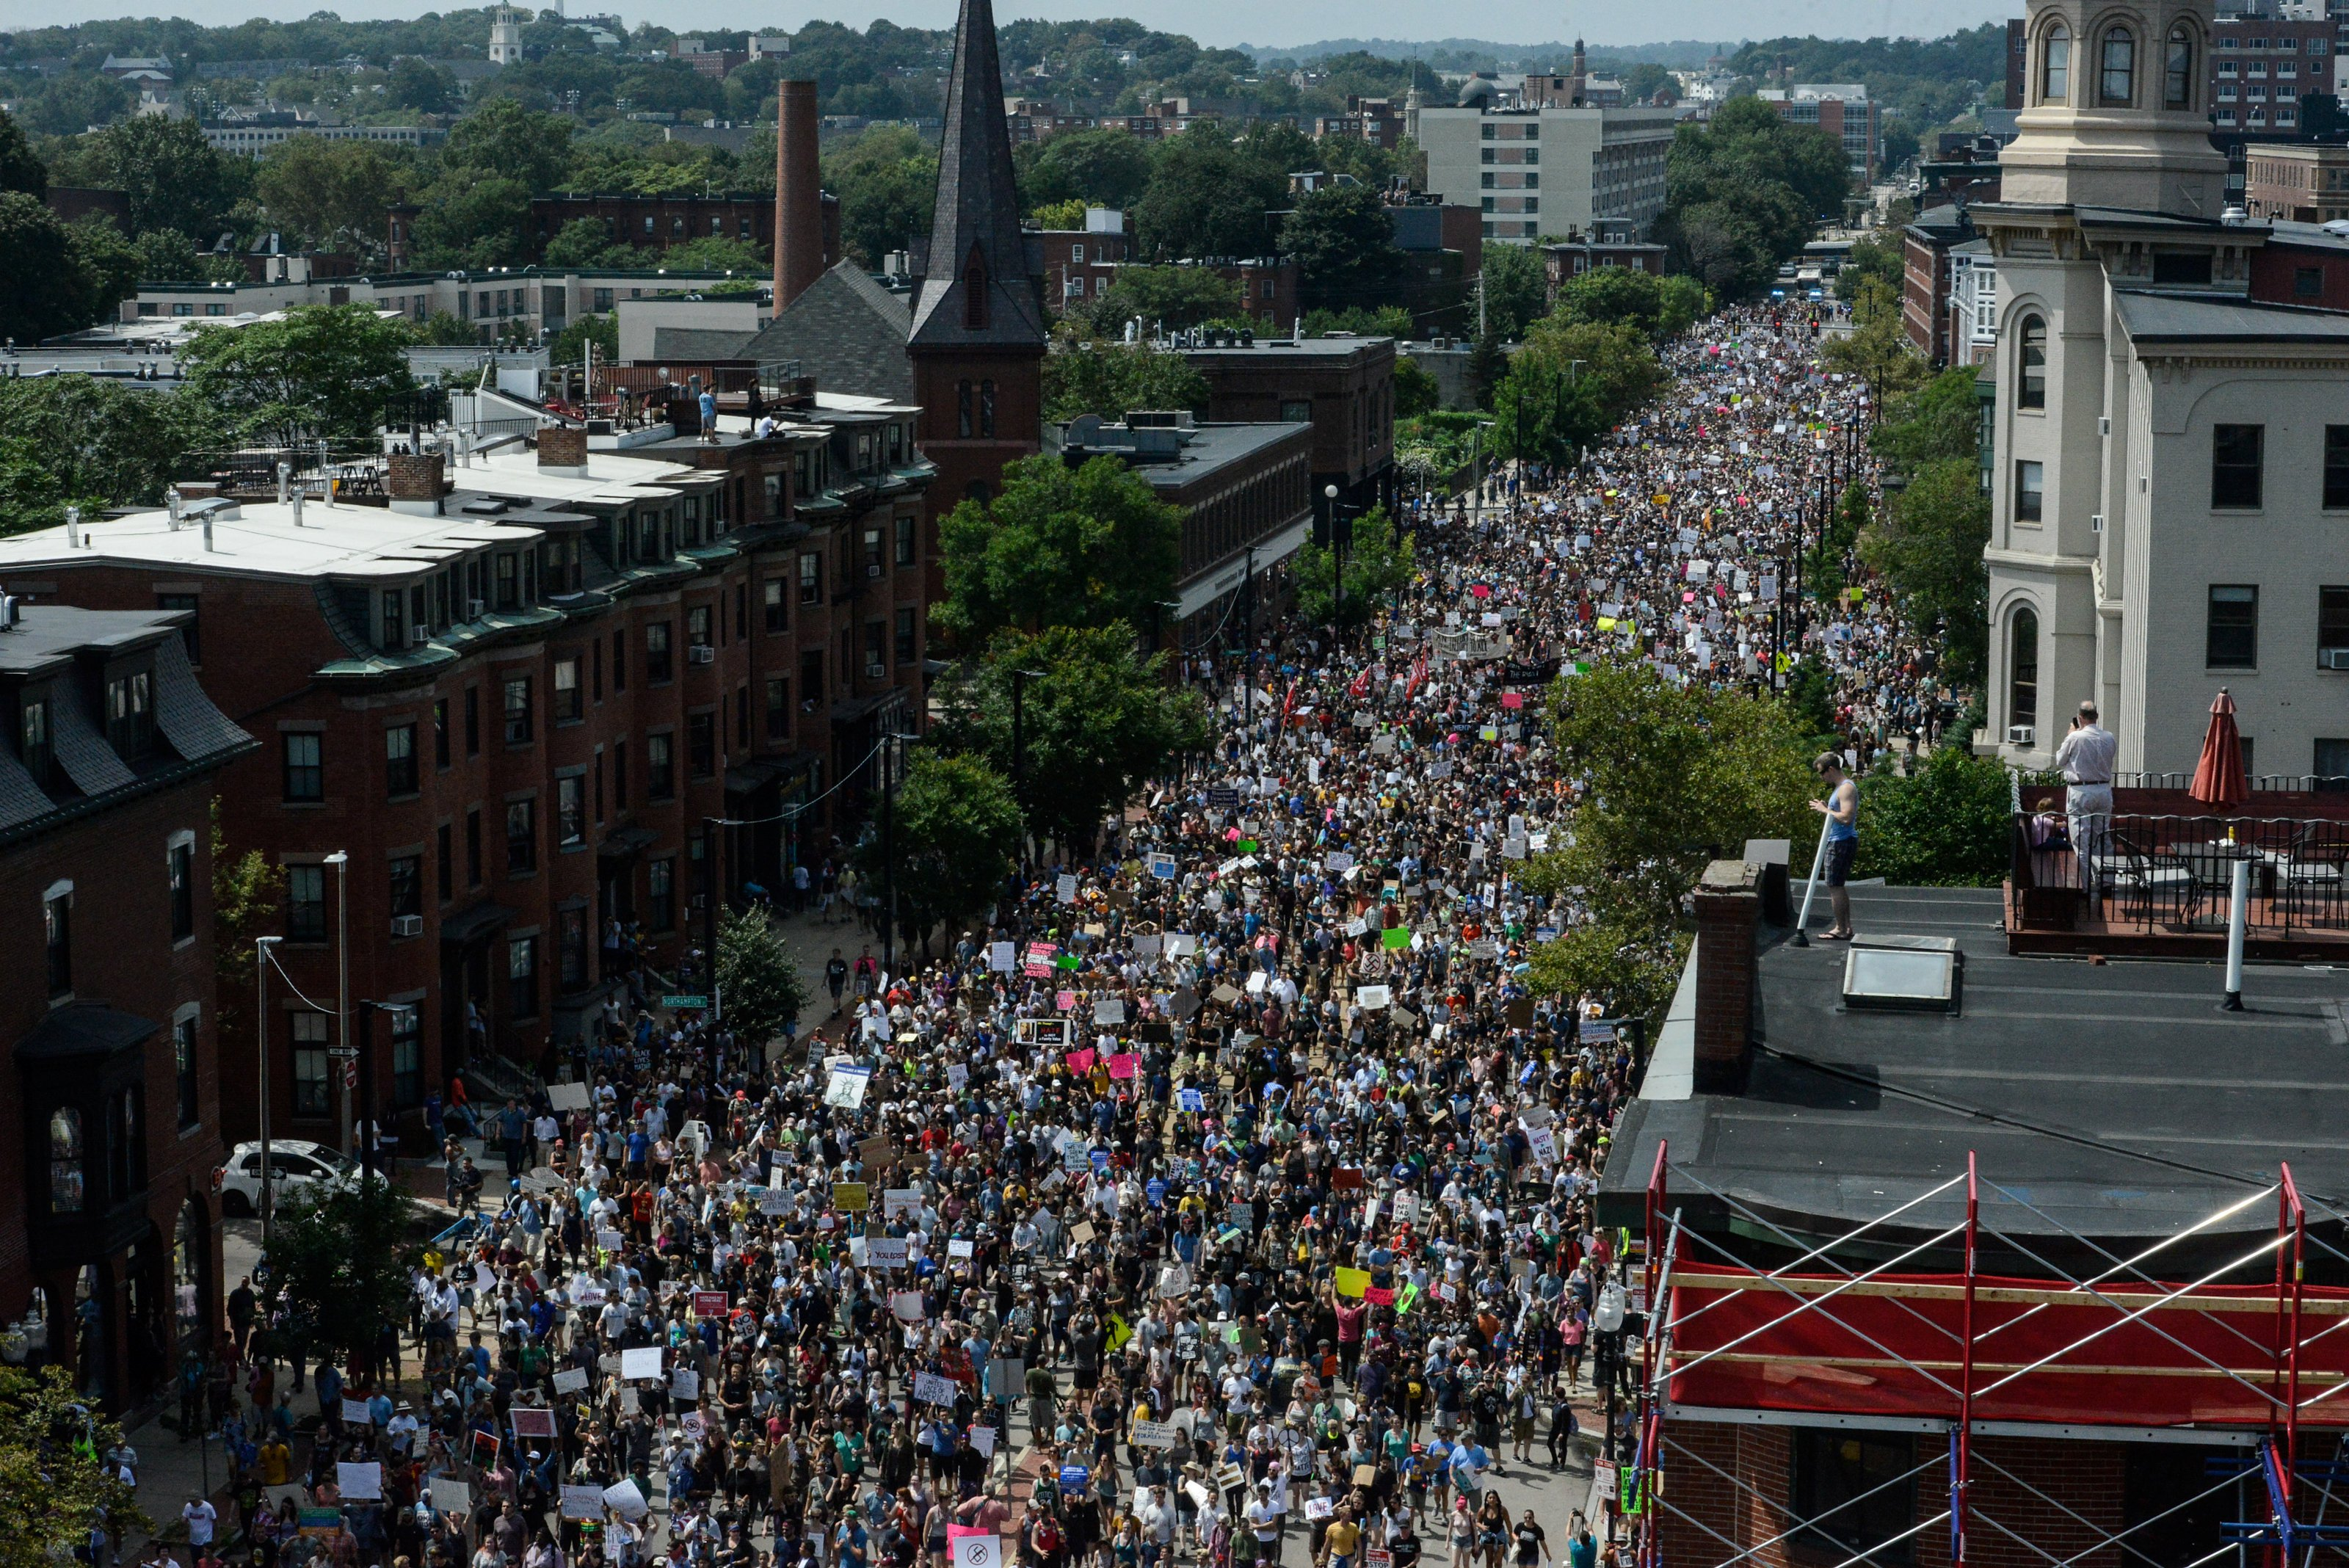 A large crowd of people march towards the Boston Commons to protest the Free Speech Rally, Aug. 19, 2017.